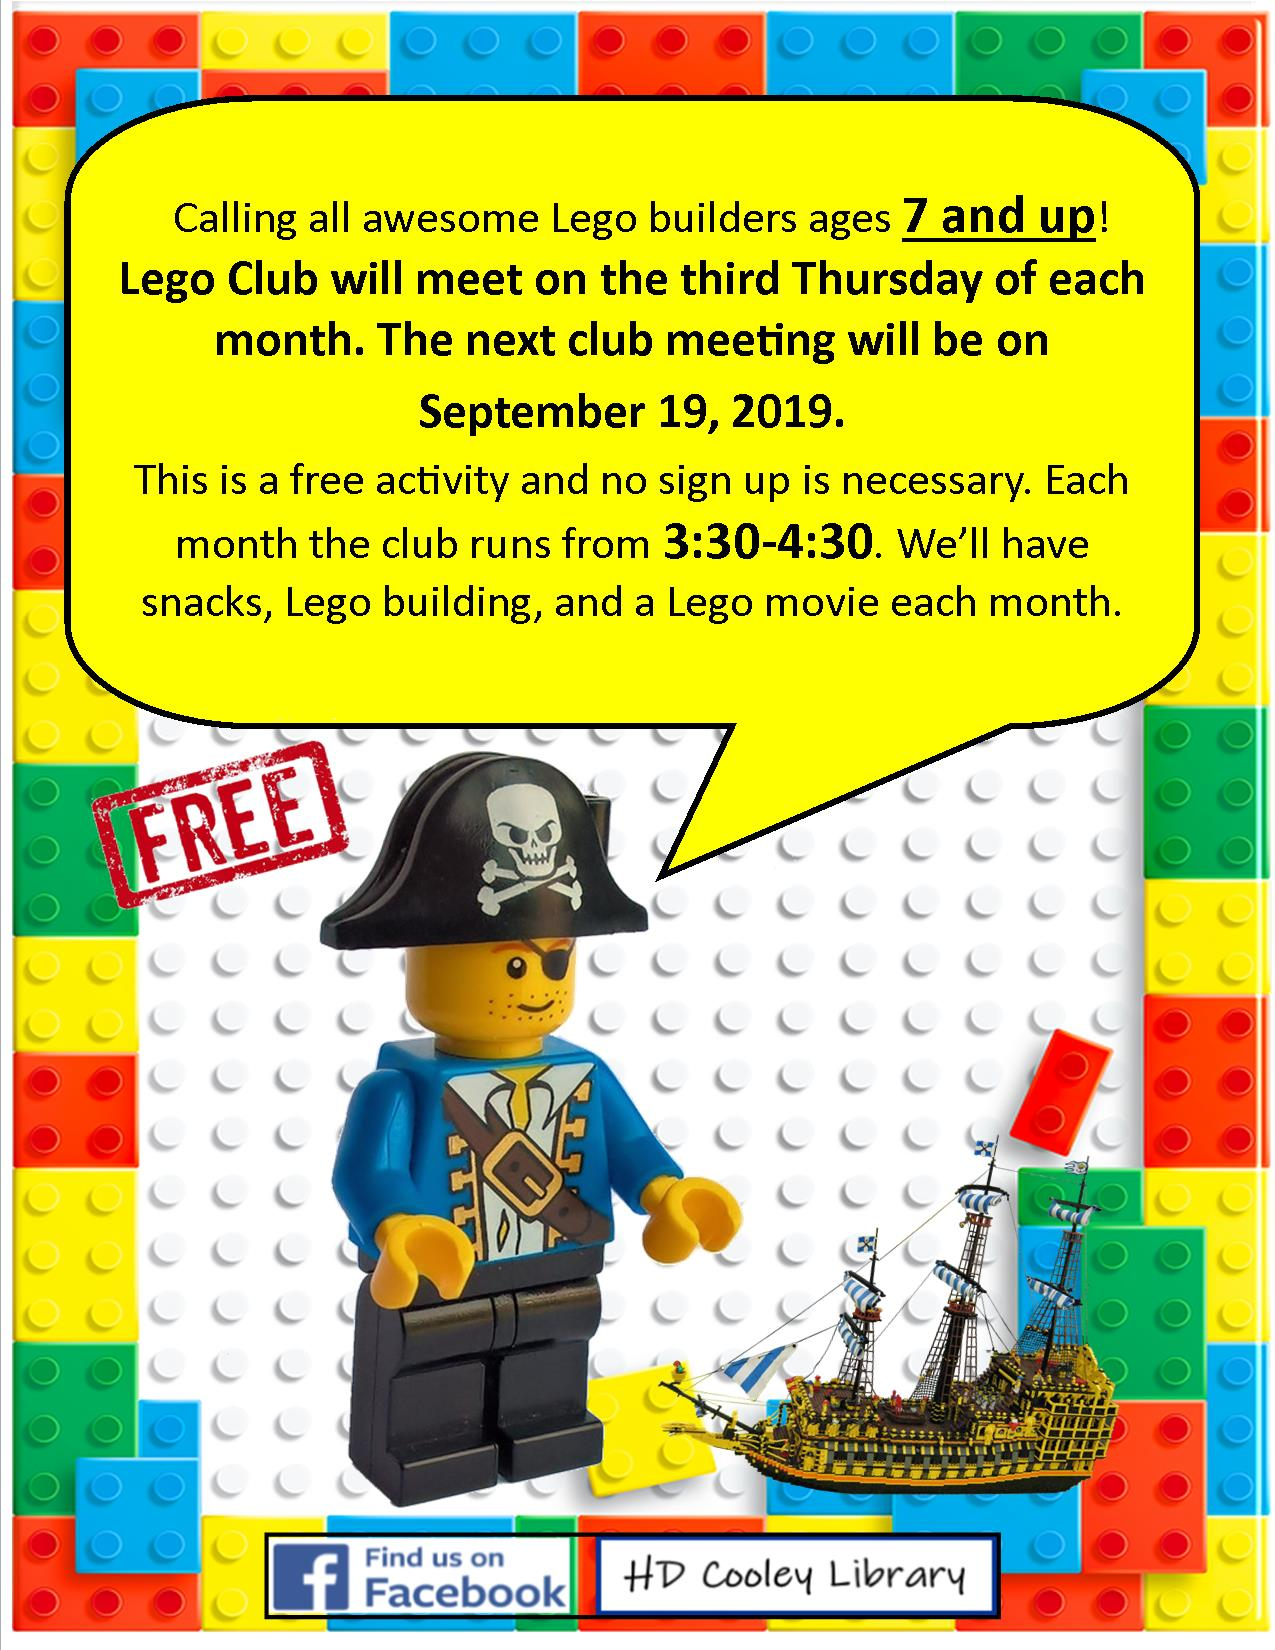 Lego Club date and time